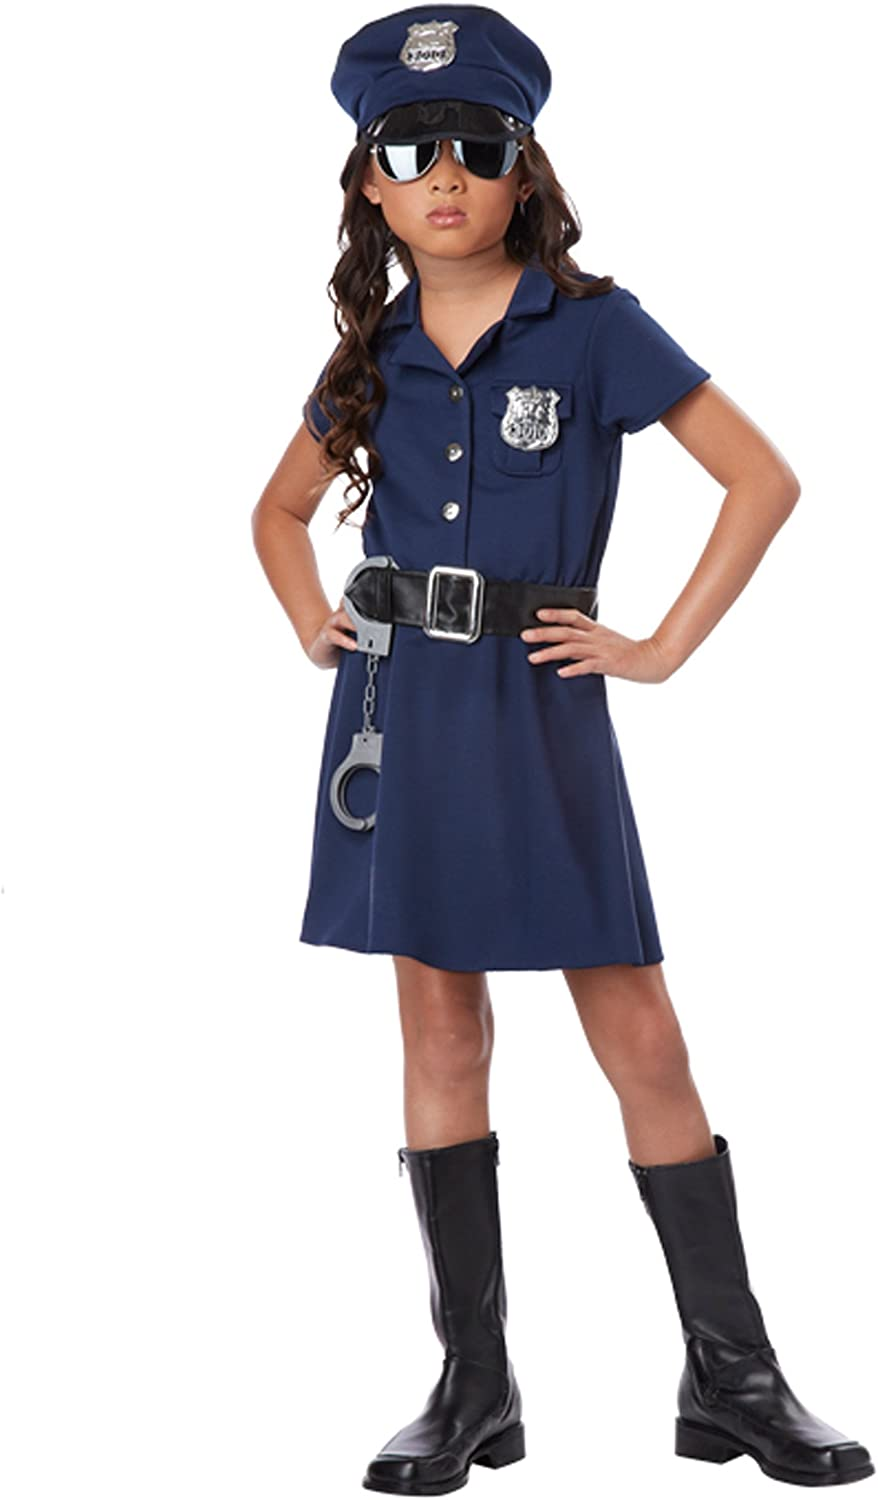 Girls Limited price sale Police Officer 8-10 Medium Costume outlet